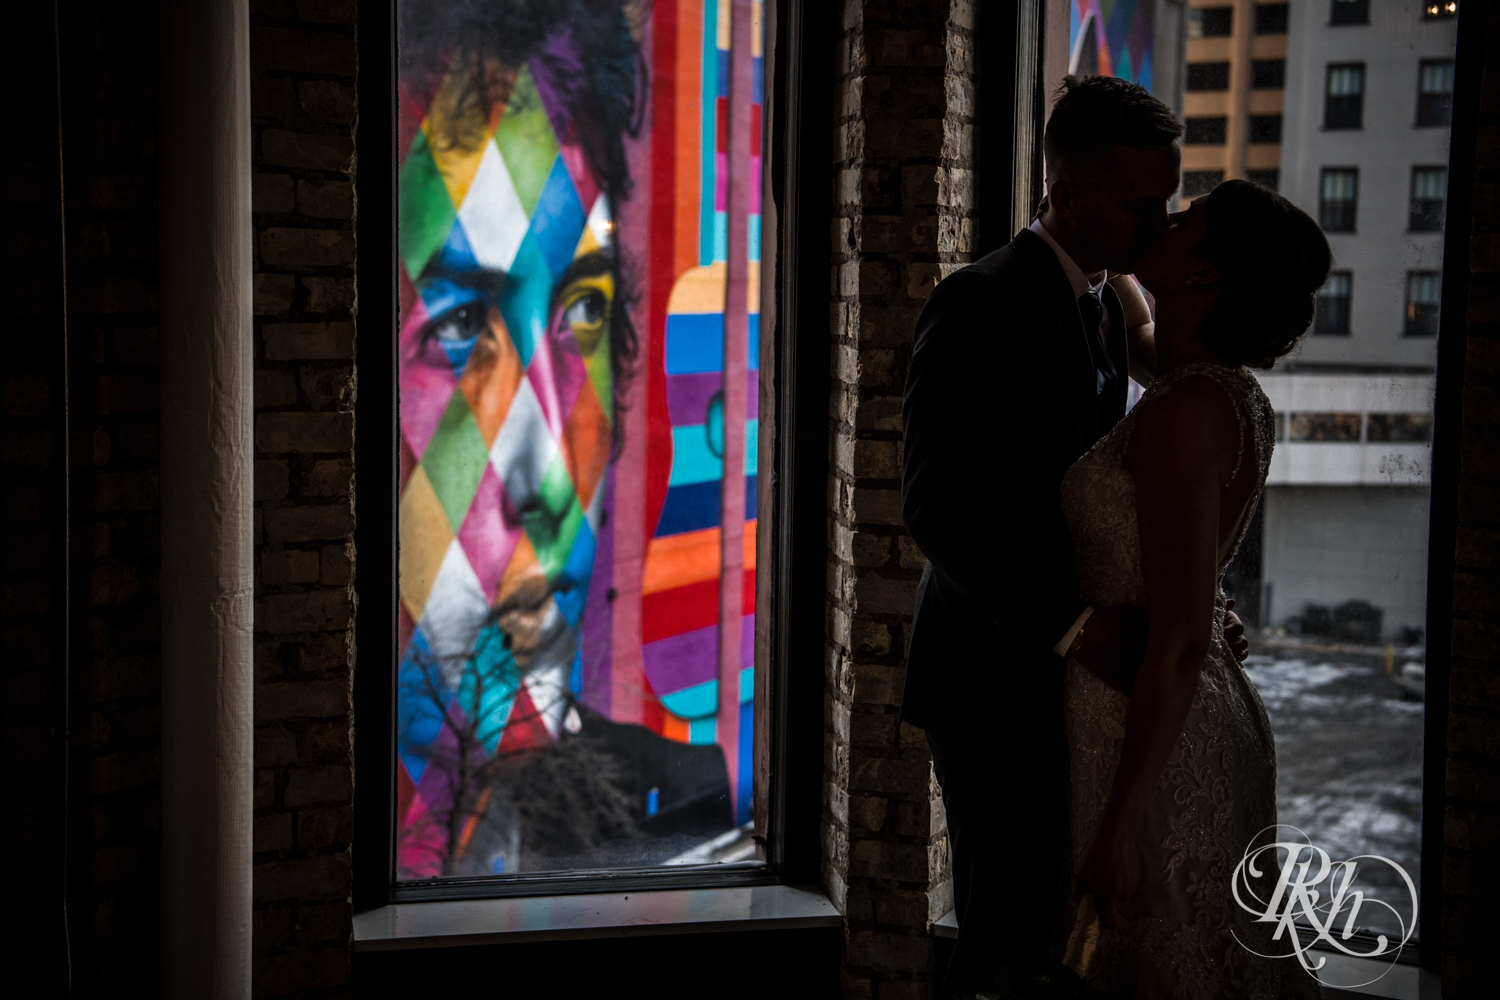 Jillian & Jared - Minnesota Wedding Photography - Lumber Exchange Event Center - RKH Images - Blog (18 of 87).jpg